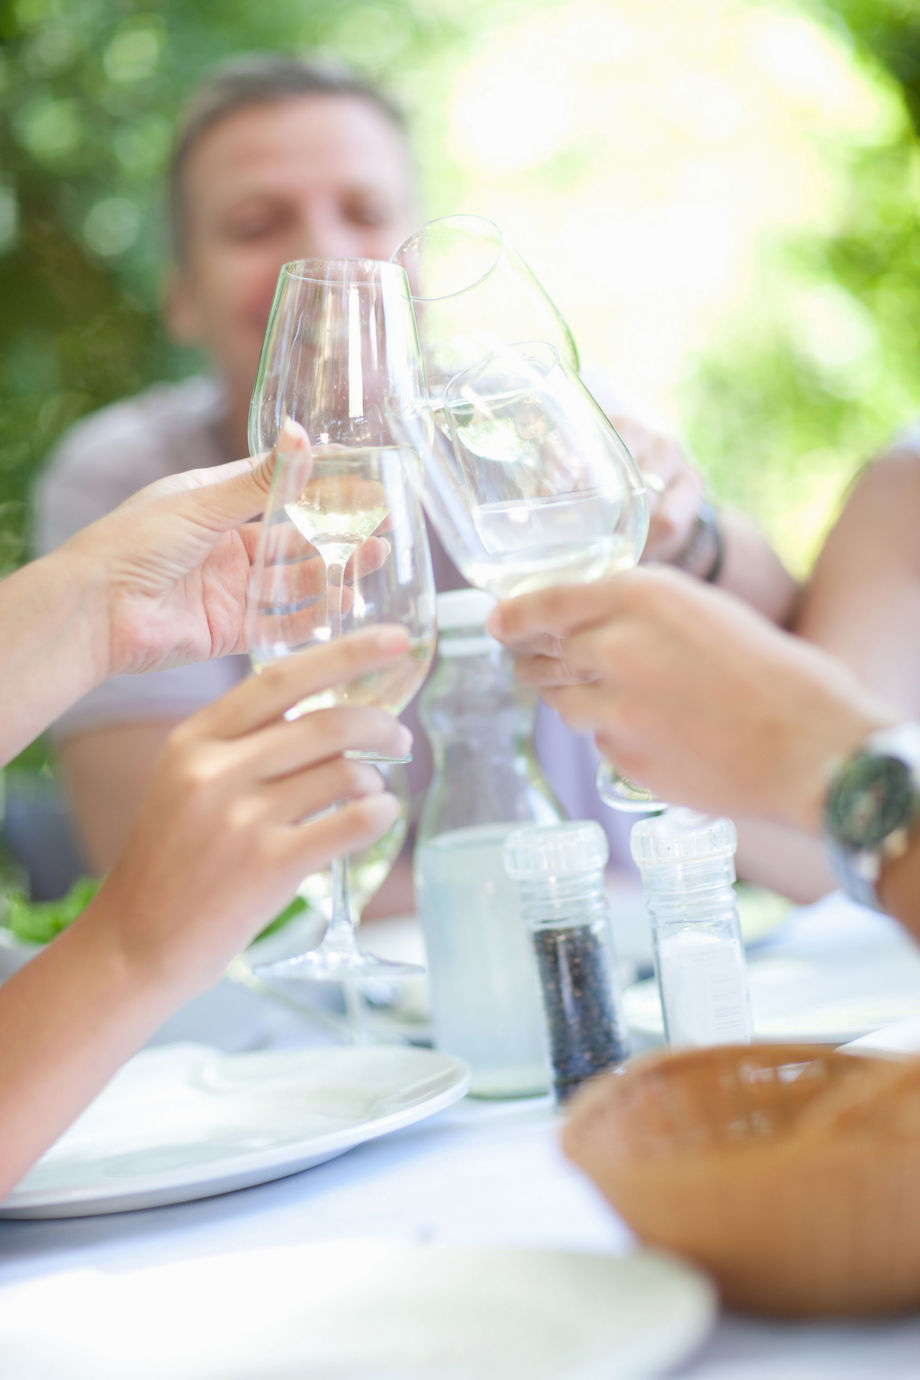 Don't let spilled wine ruin your al fresco dining